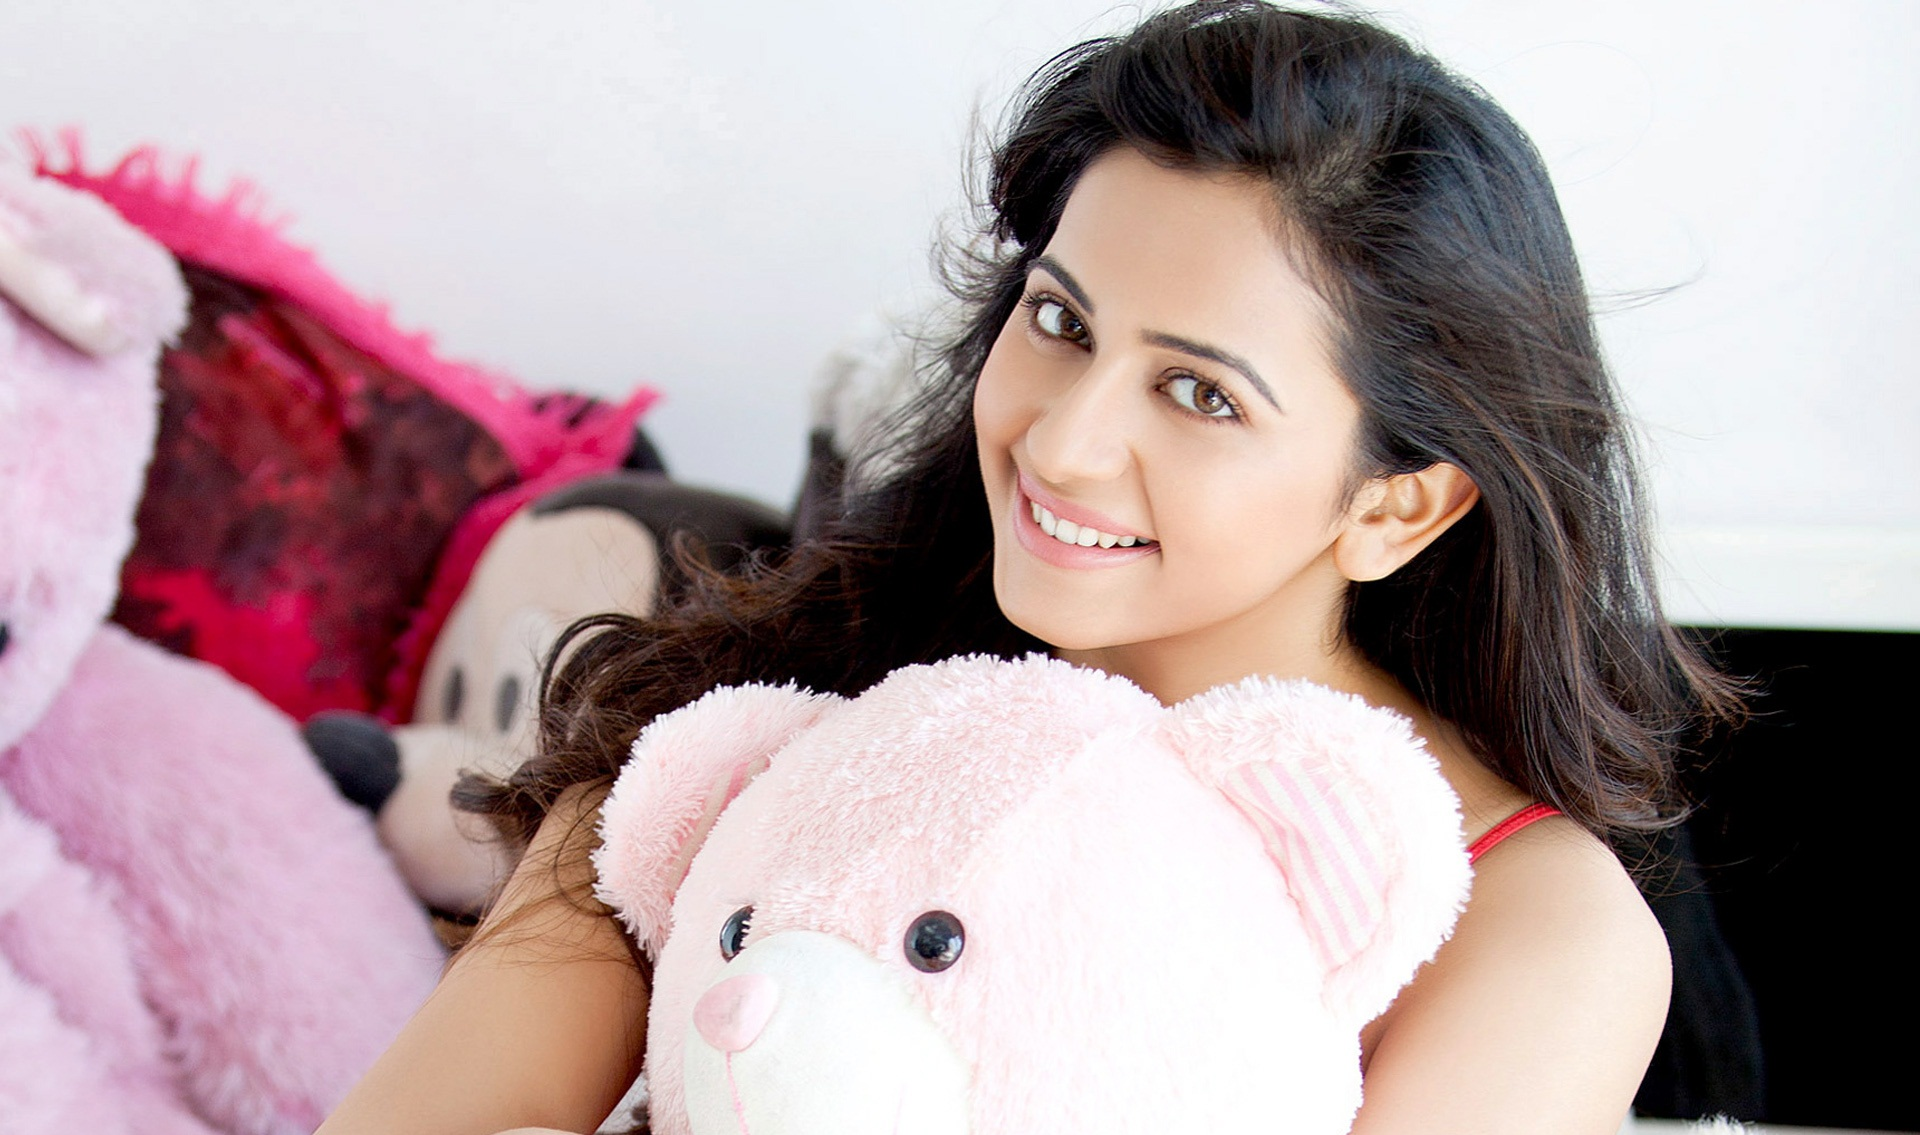 wonderful rakul preet singh best cute smile mobile free background deskop hd images